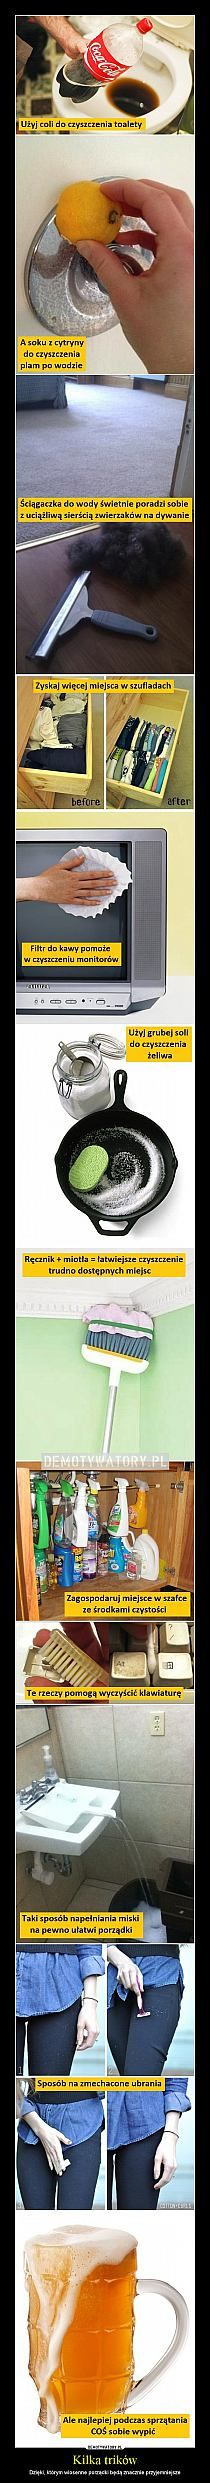 Have no idea what it says but I get it. Diy And Crafts, Arts And Crafts, Housekeeping Tips, Simple Life Hacks, Outdoor Life, Things To Know, Clean House, Beach Club, Organization